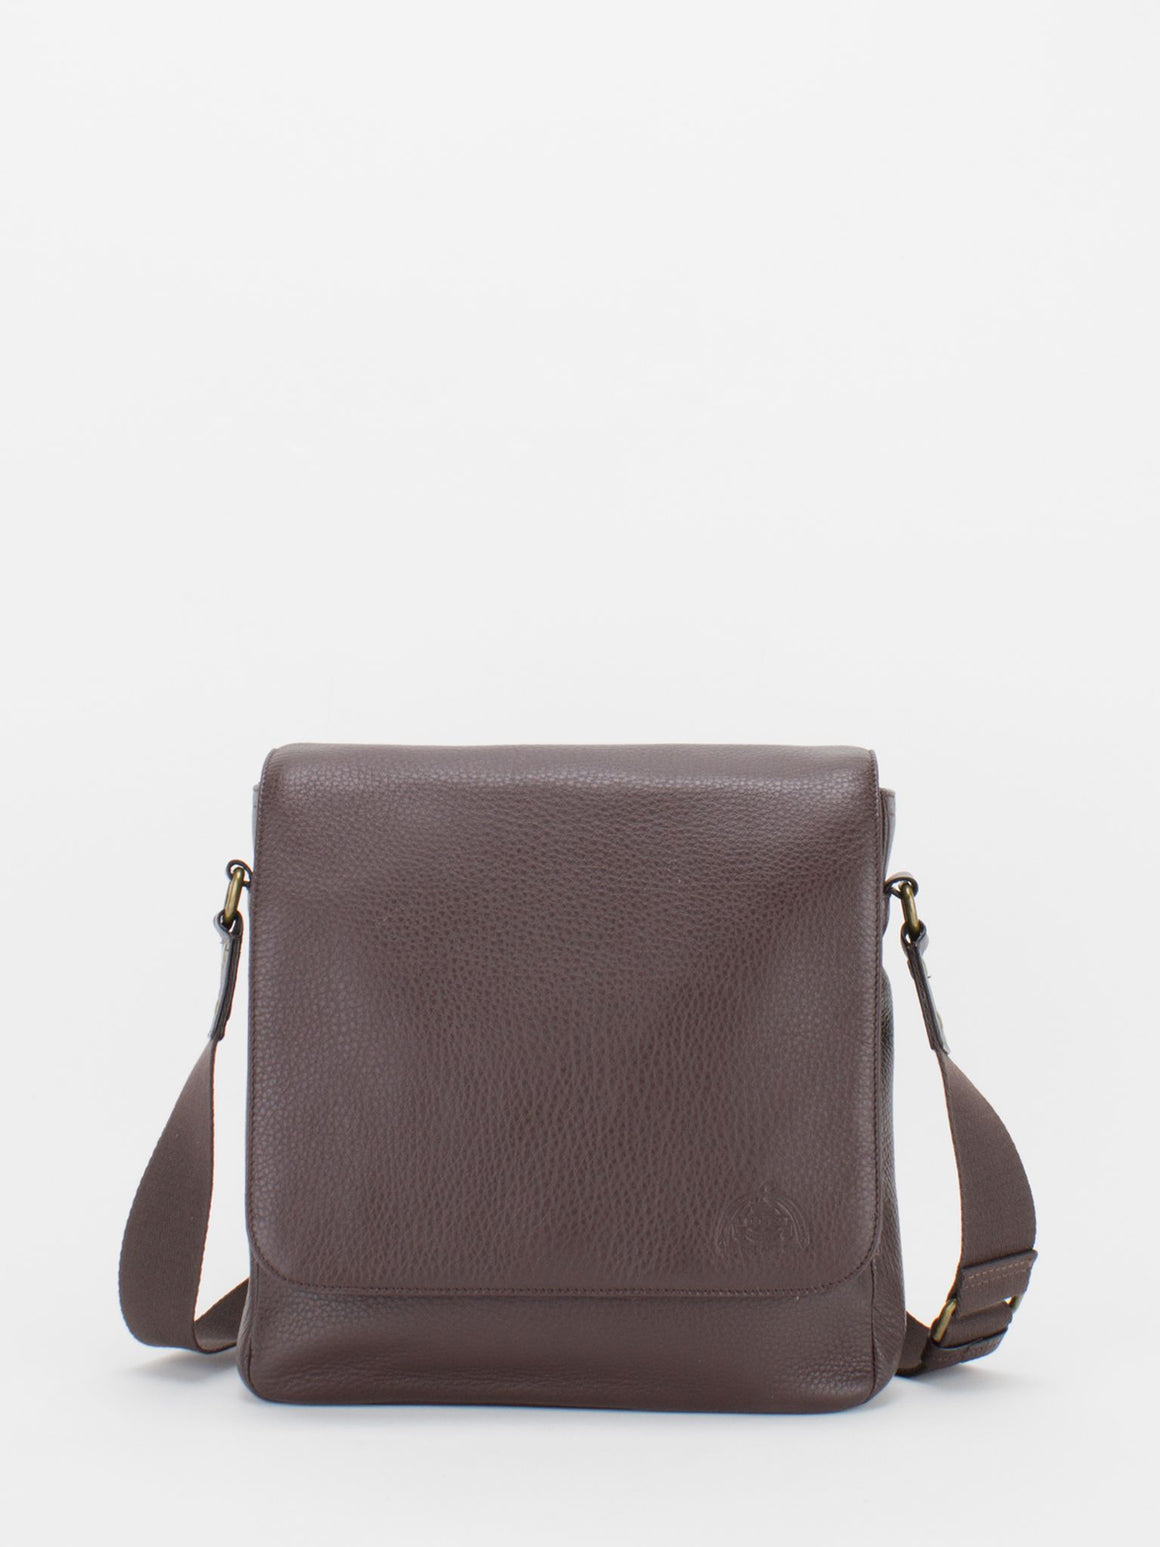 Max Pebble Leather Flapover Shoulder Bag - Brown